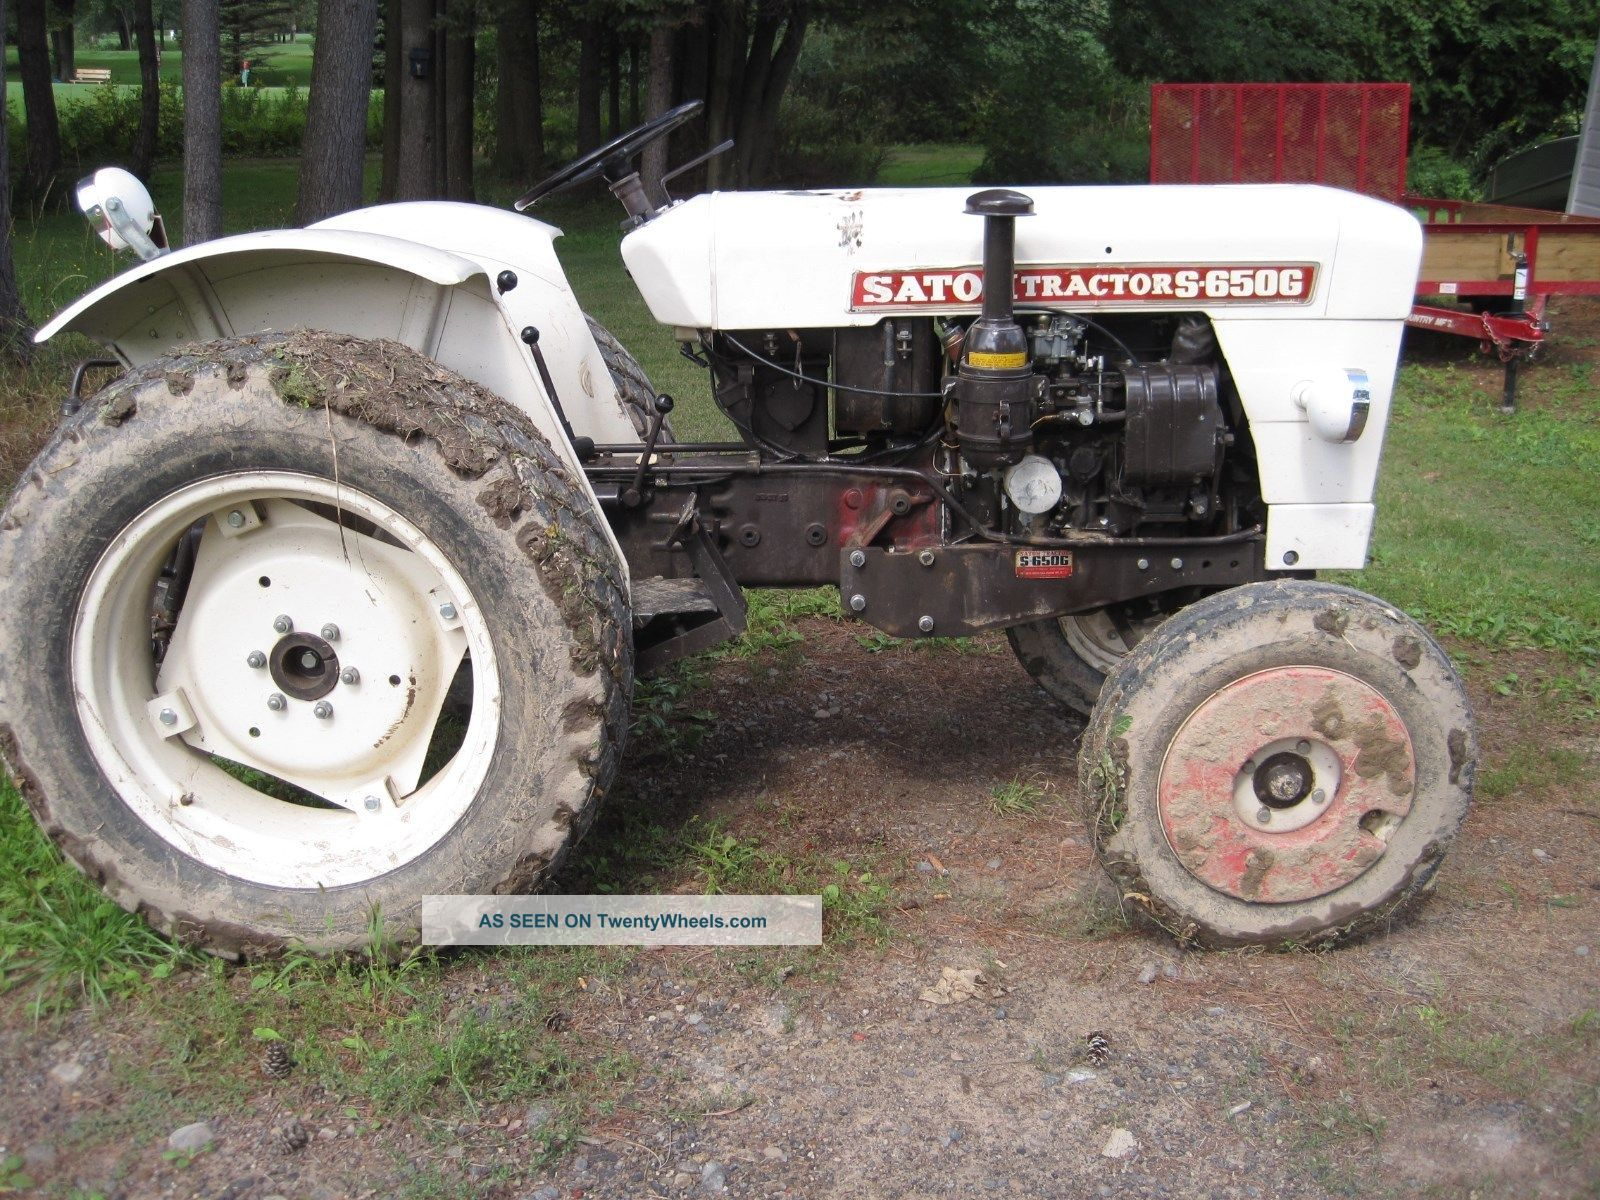 9755 1950 ford 8n tractor as well Sell STEYR 6x4 15ton 16m3 Cargo Truck further 517351075926716080 additionally 164Semis Pickups Trucks additionally How To Draw A Truck And Trailer. on tractor trailer dump trucks